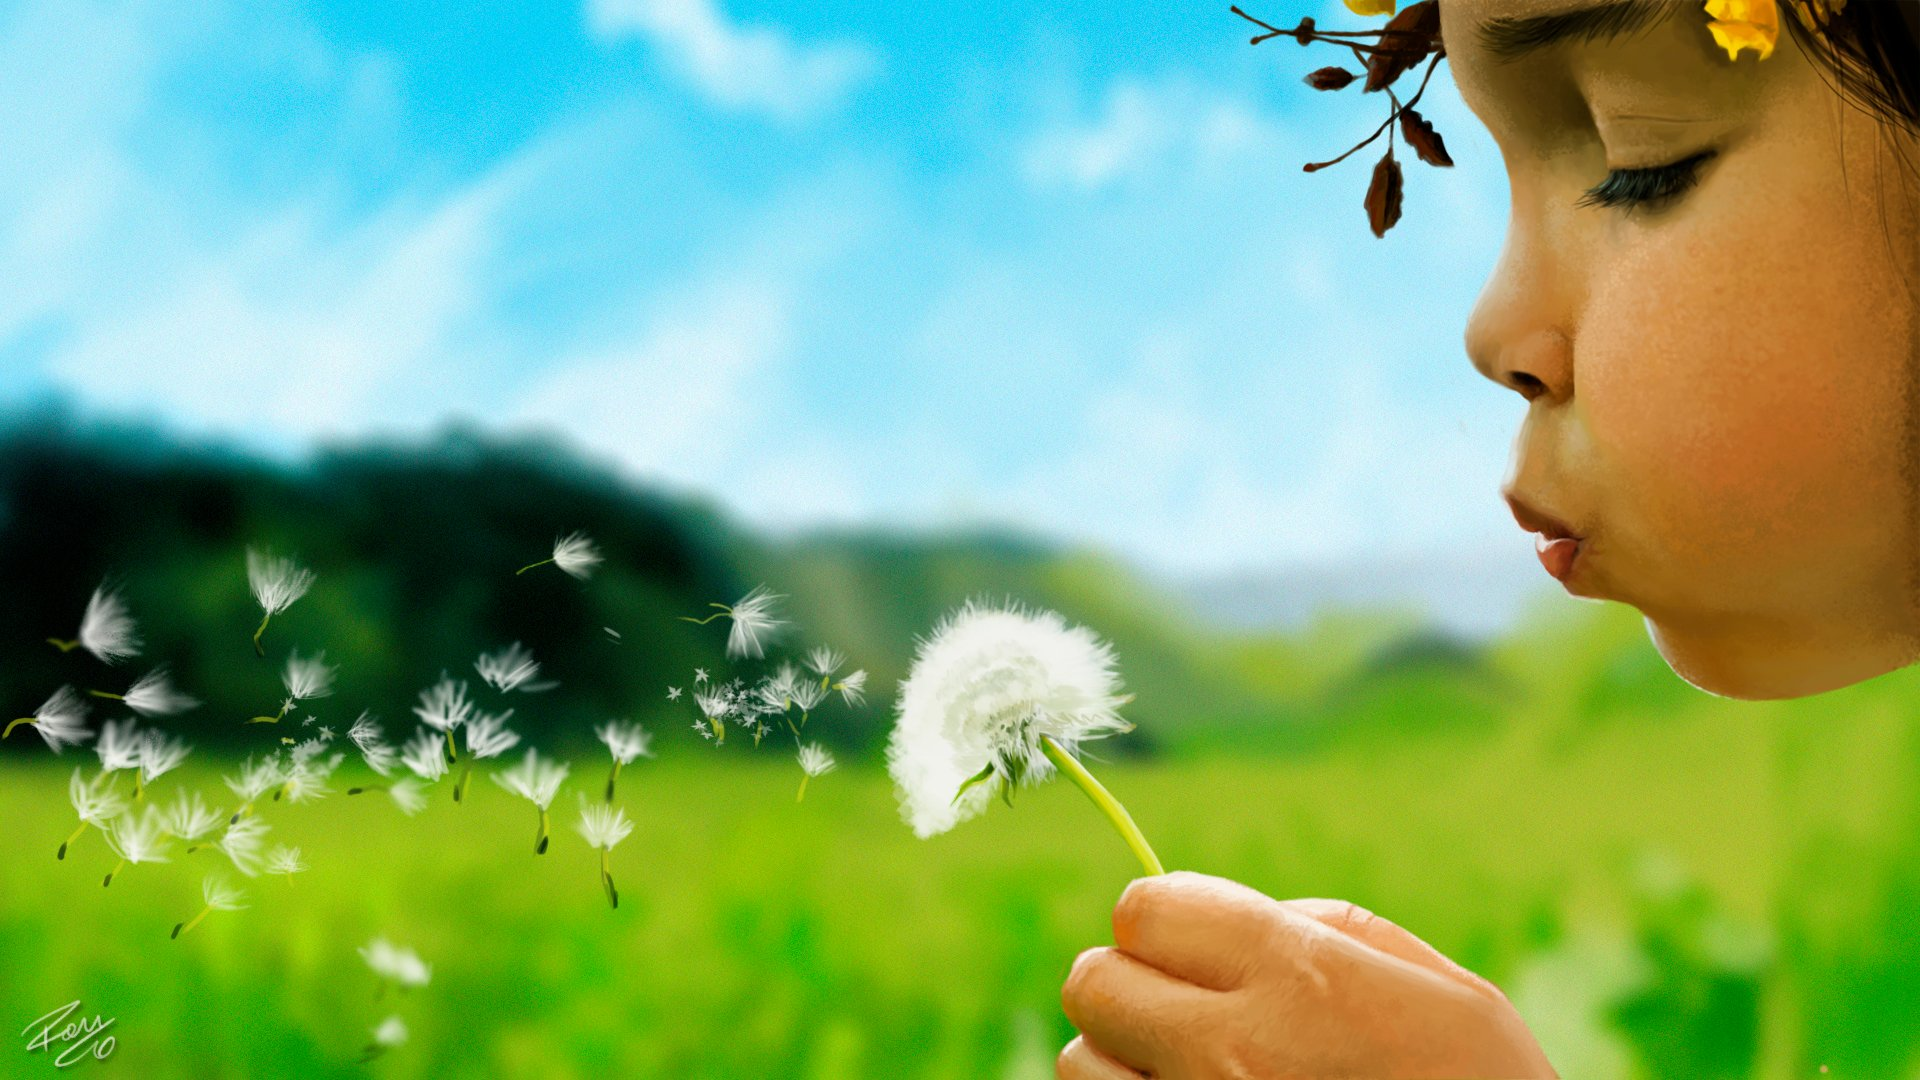 Little girl blowing a dandelion by RamonFelinto 1920x1080